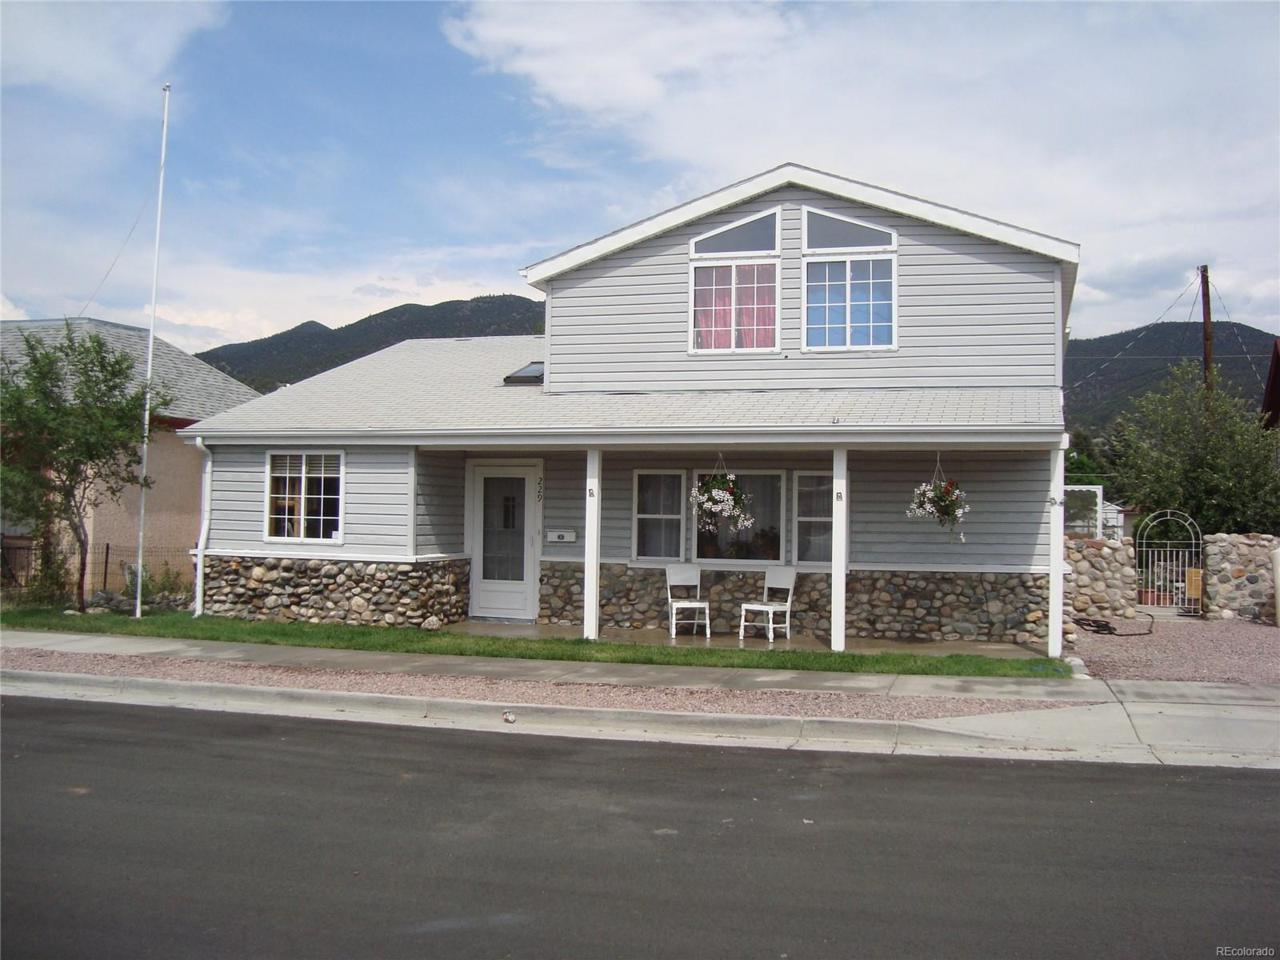 229 Hunt Street, Salida, CO 81201 (MLS #4404314) :: 8z Real Estate